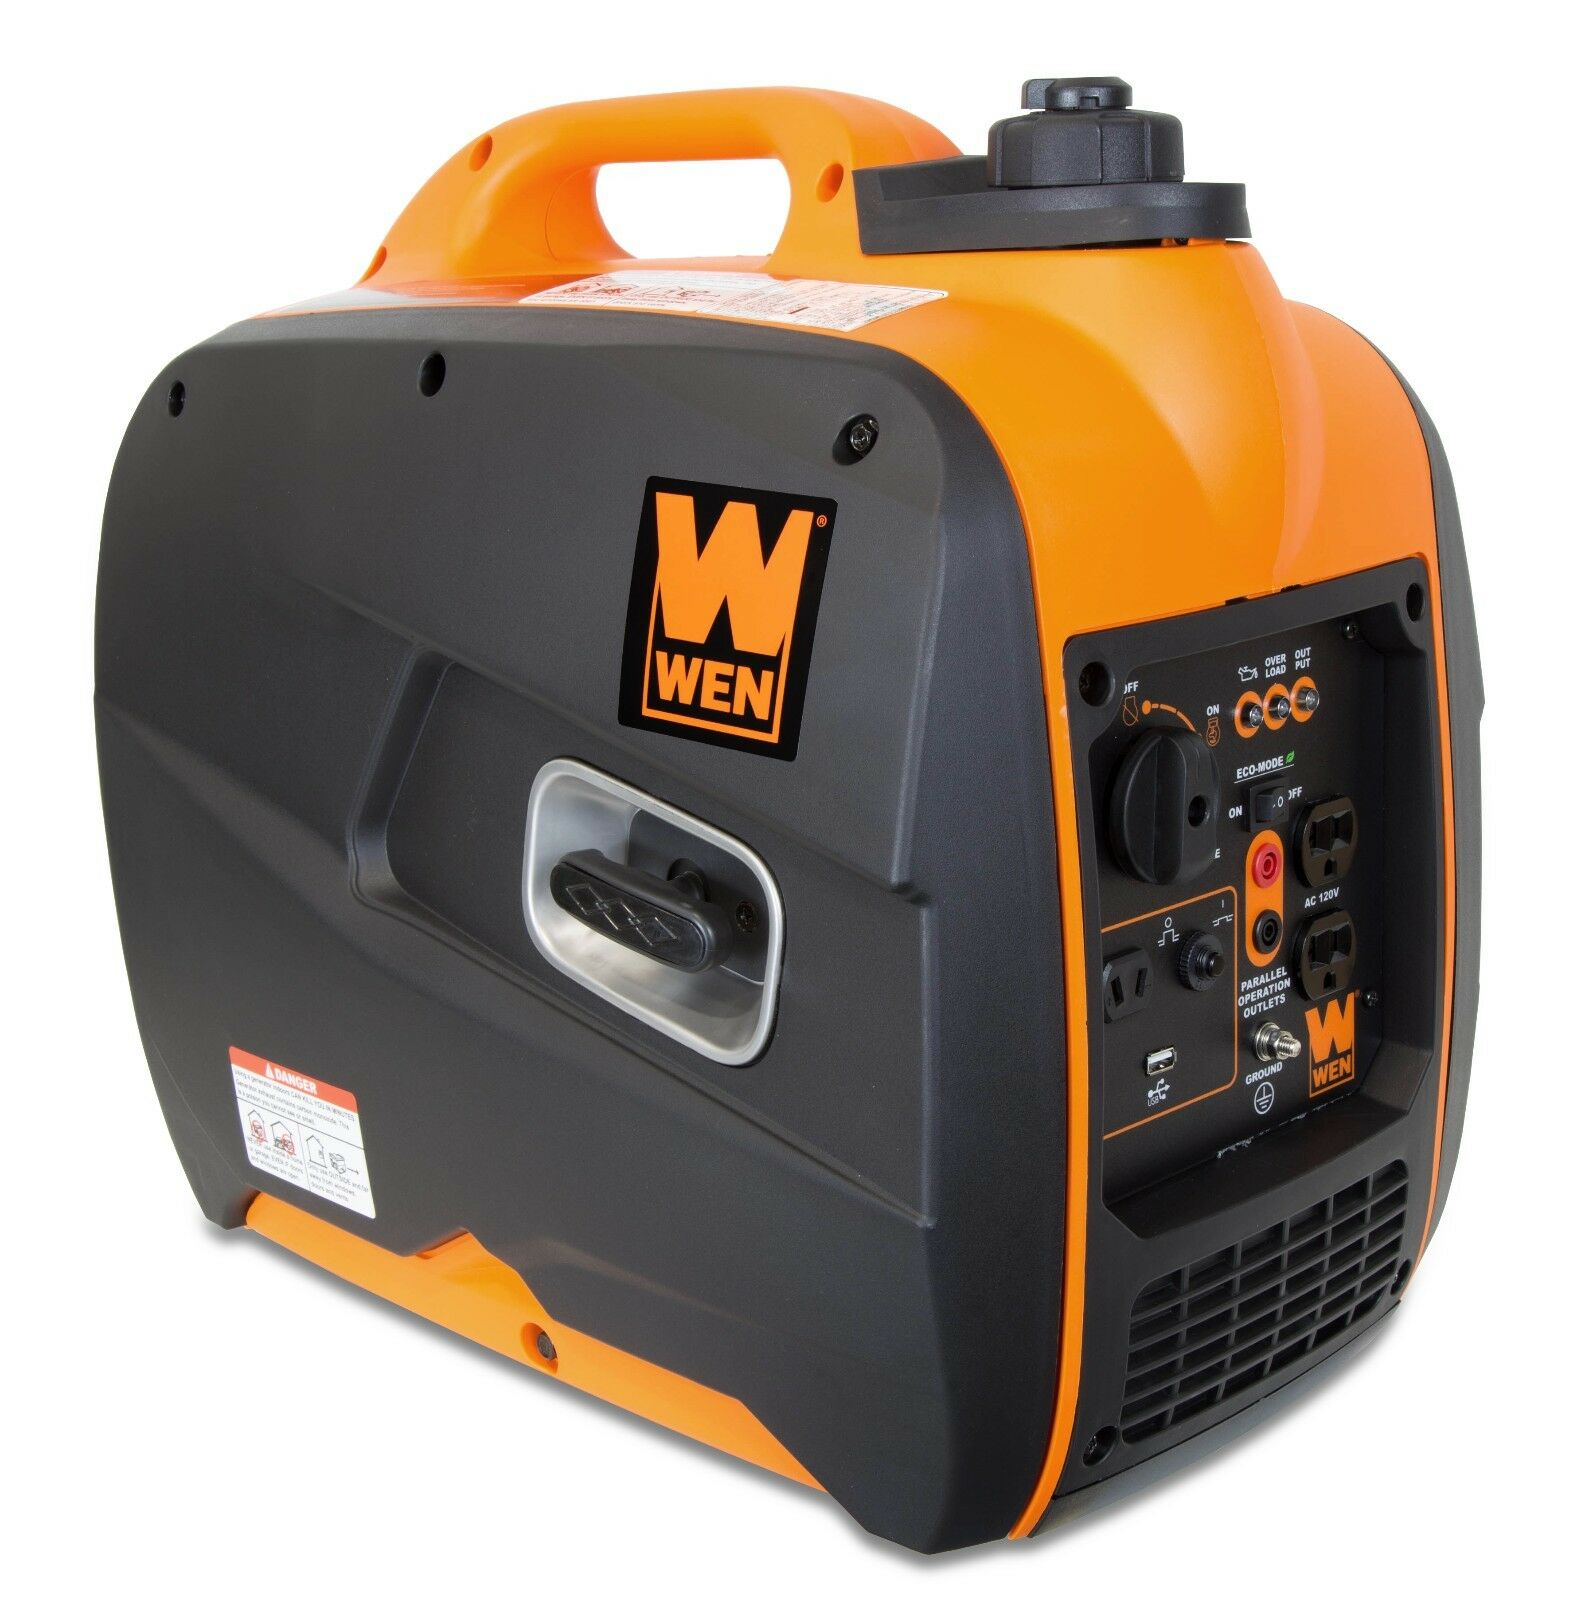 WEN 56200i 2000W Gas-Powered Portable Inverter Generator (SHIPS TO PUERTO RICO)